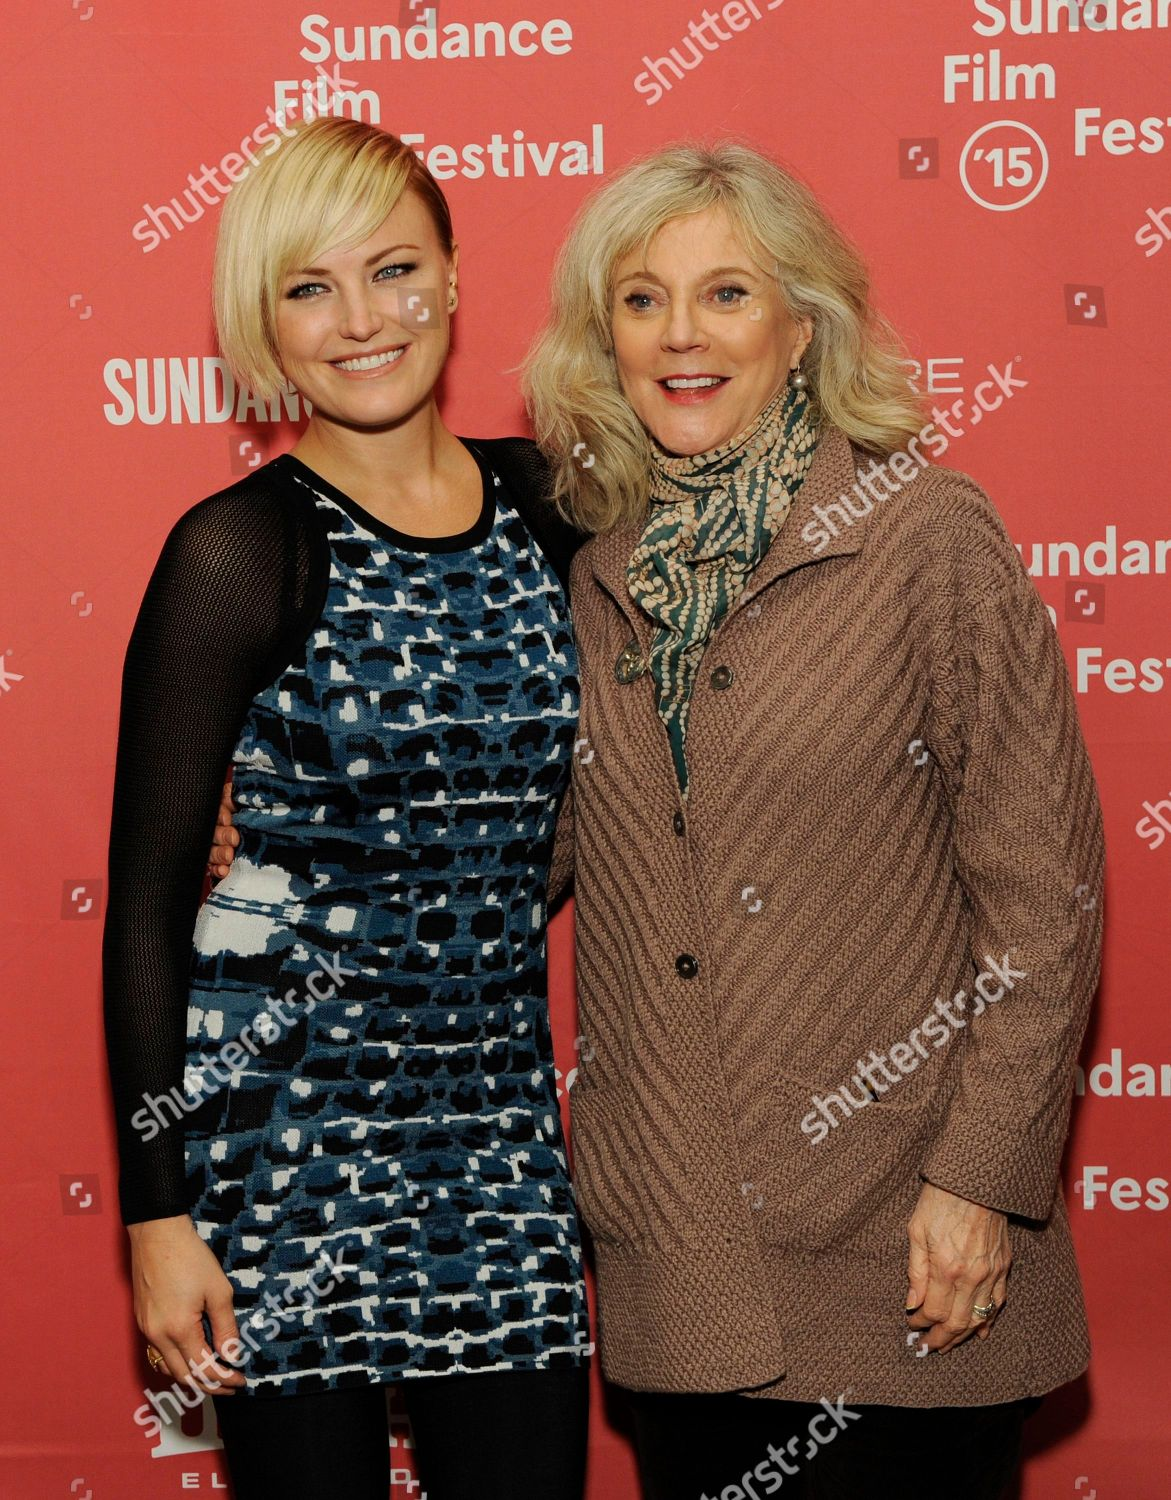 Malin Ackerman left Blythe Danner cast members Editorial